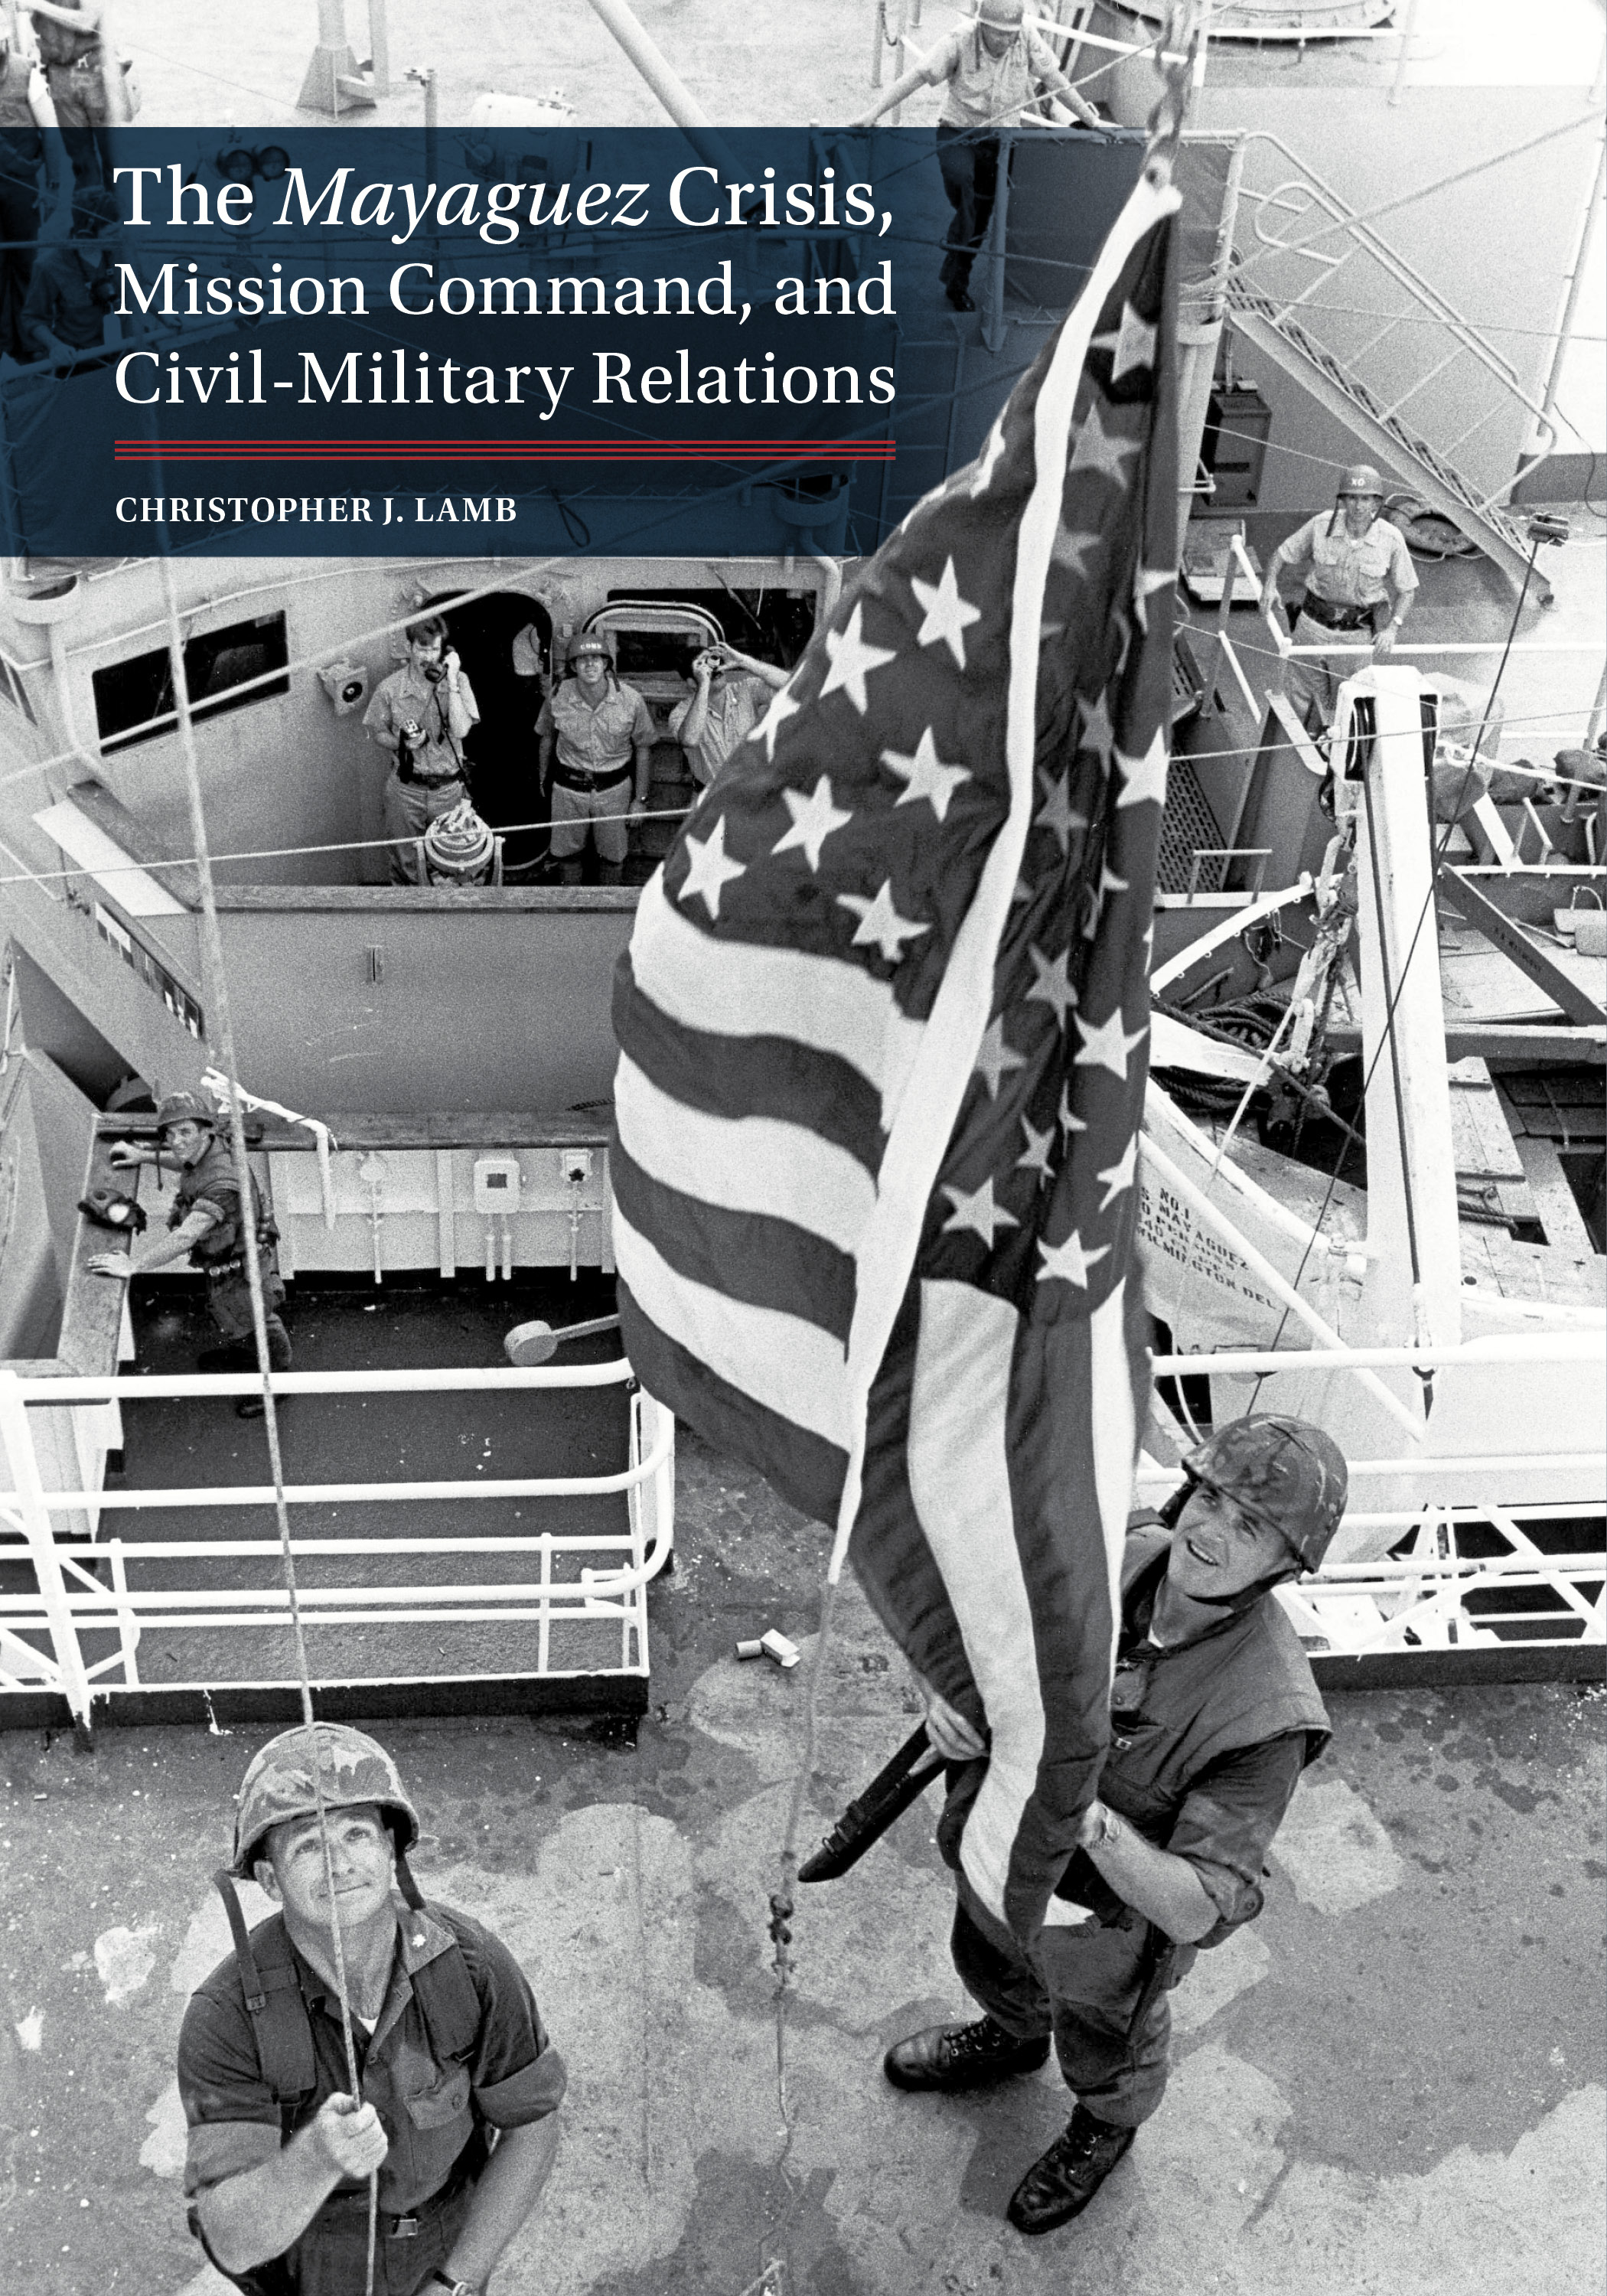 ray porter left and capt walt wood raise the american flag above the mayaguez on may 15 1975 naval history and heritage command vietnam collection  [ 2100 x 3000 Pixel ]